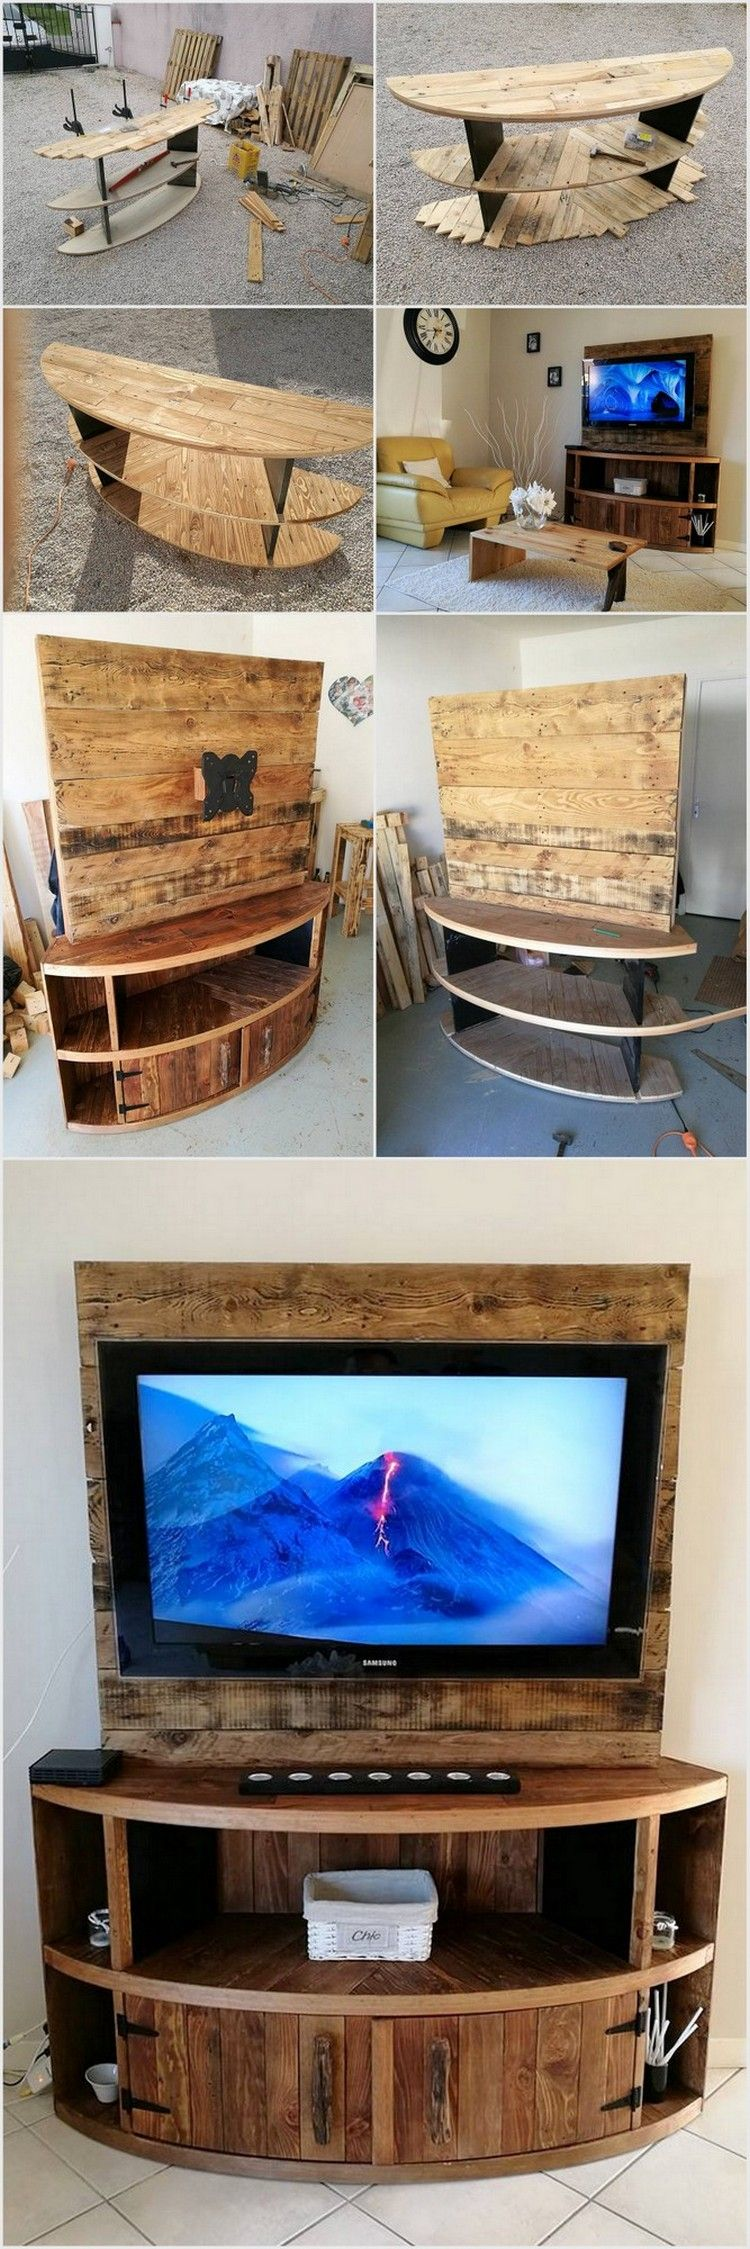 diy wood pallet entertainment center tv stand palety pinterest m bel selbstgemachte. Black Bedroom Furniture Sets. Home Design Ideas